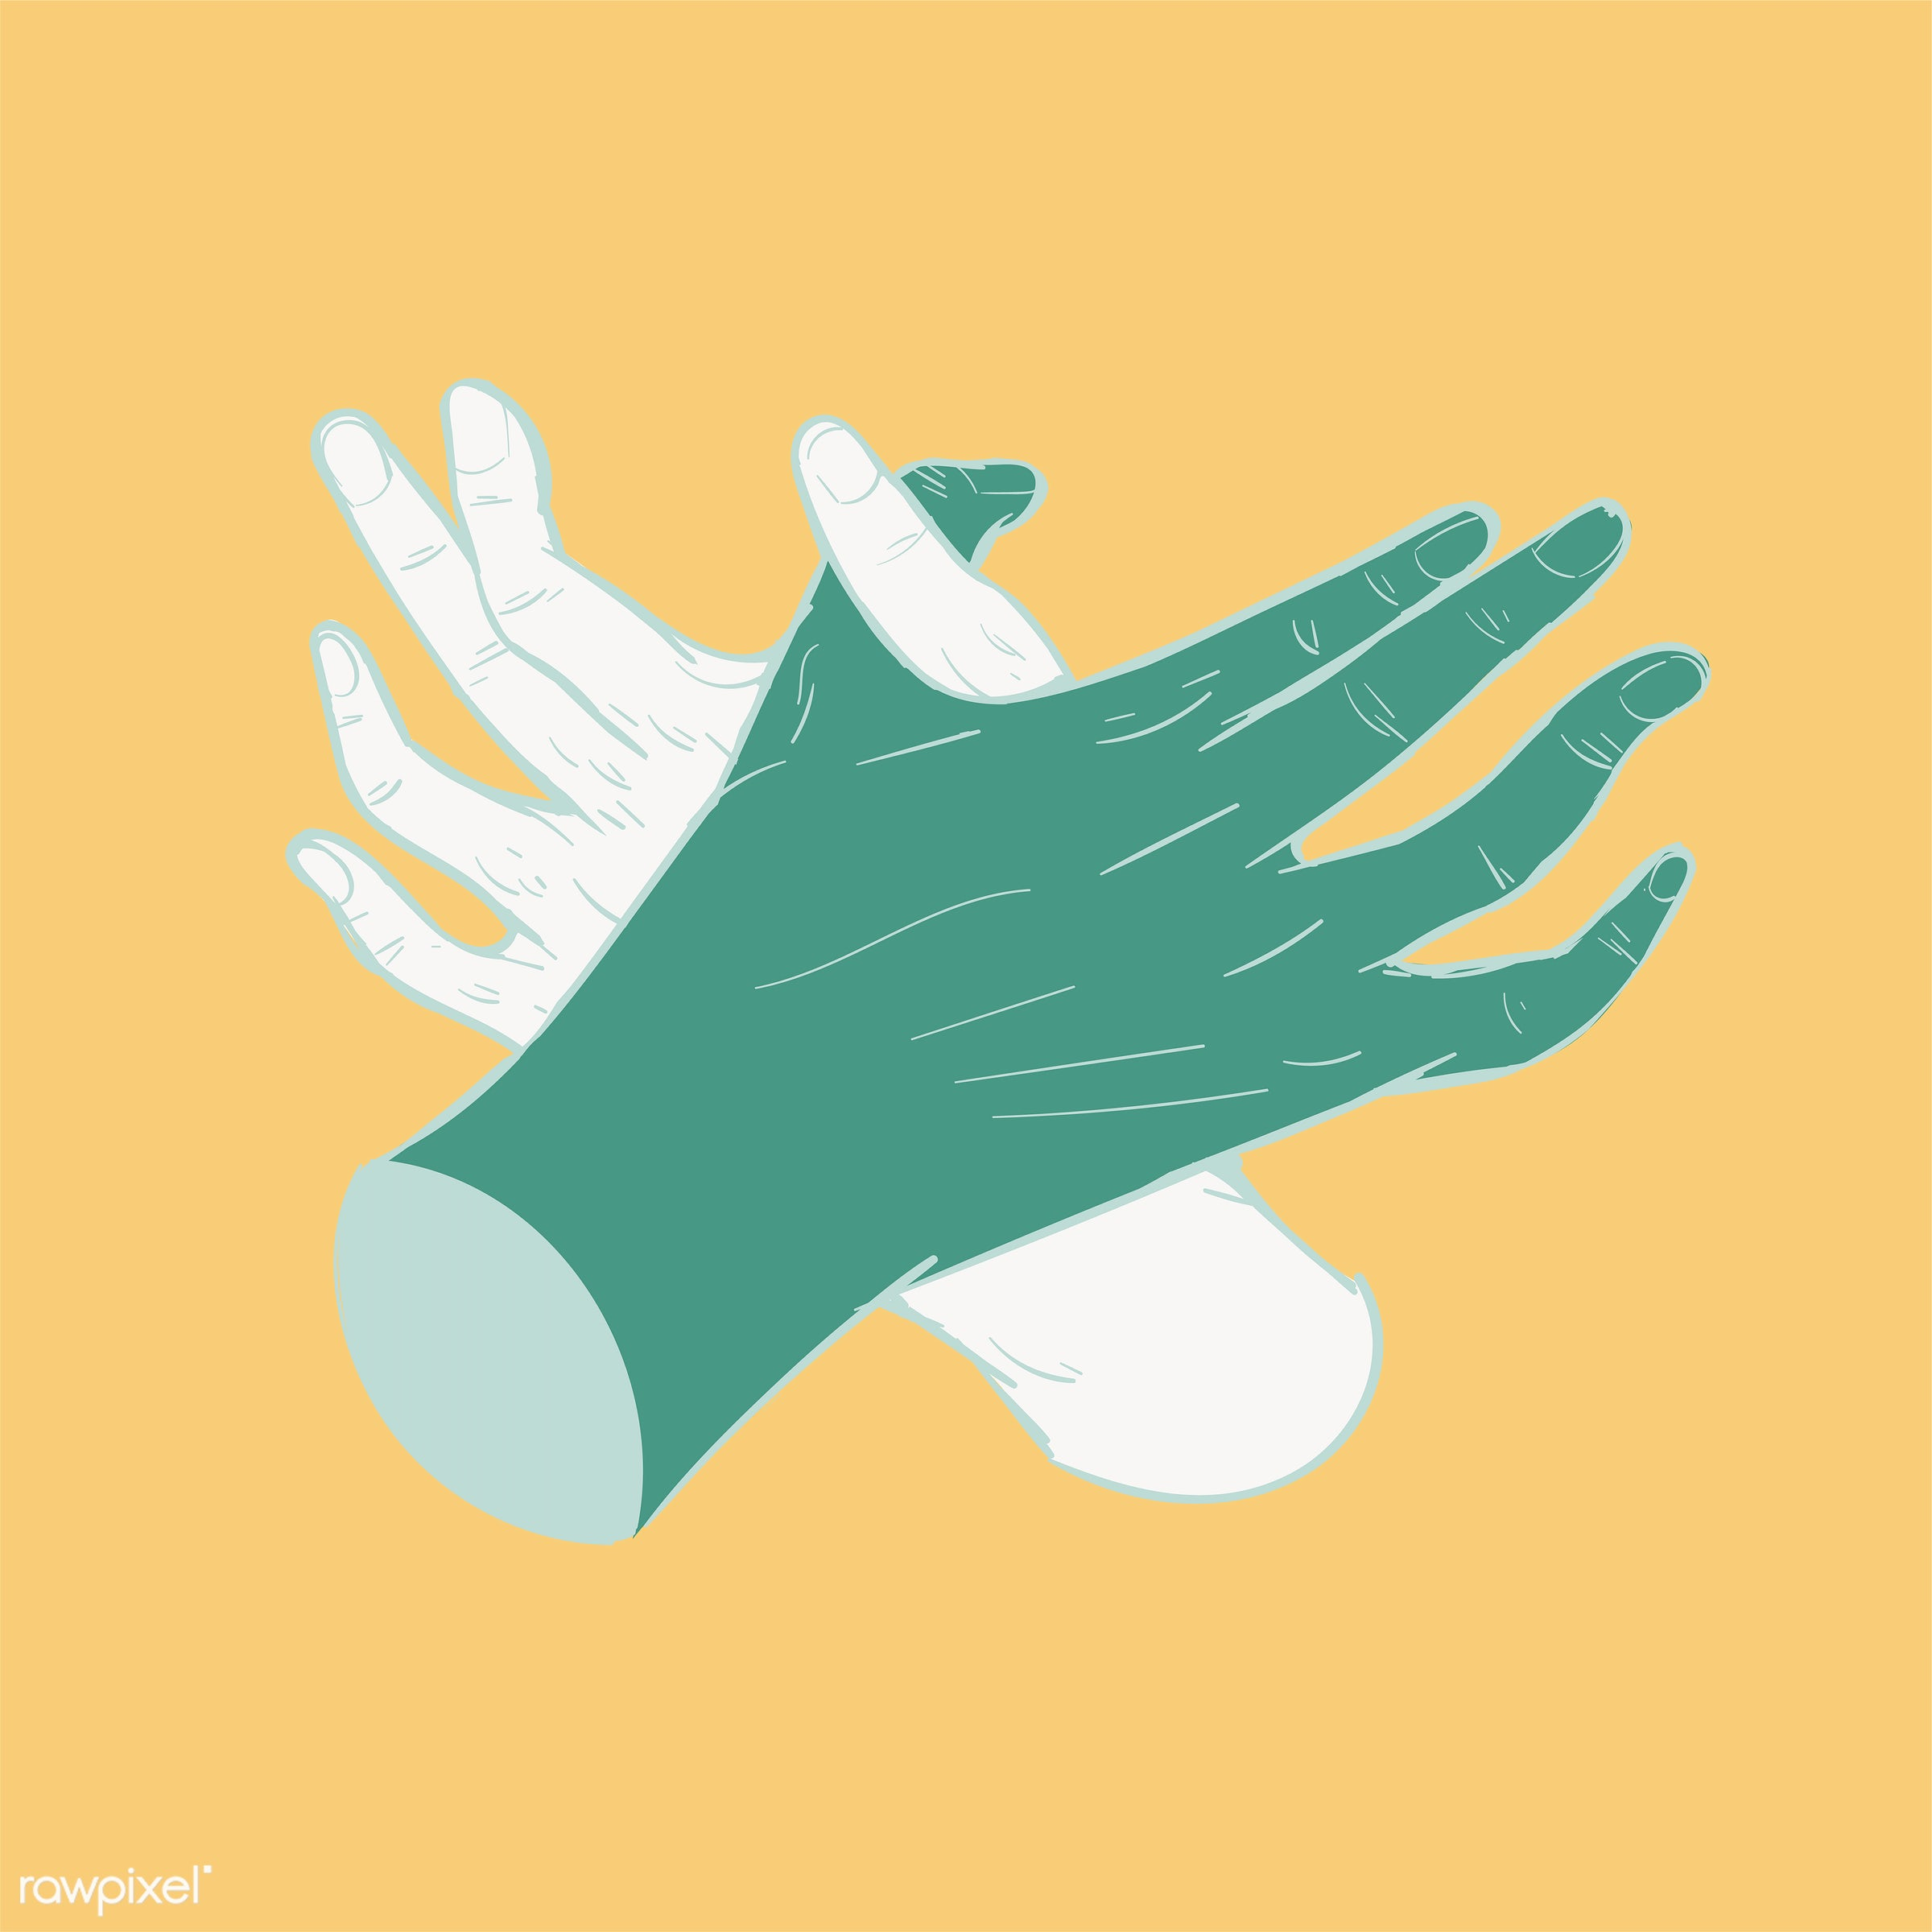 Hand drawing illustration of freedom concept - artwork, creative, creativity, design, drawing, drawn, equality, free,...